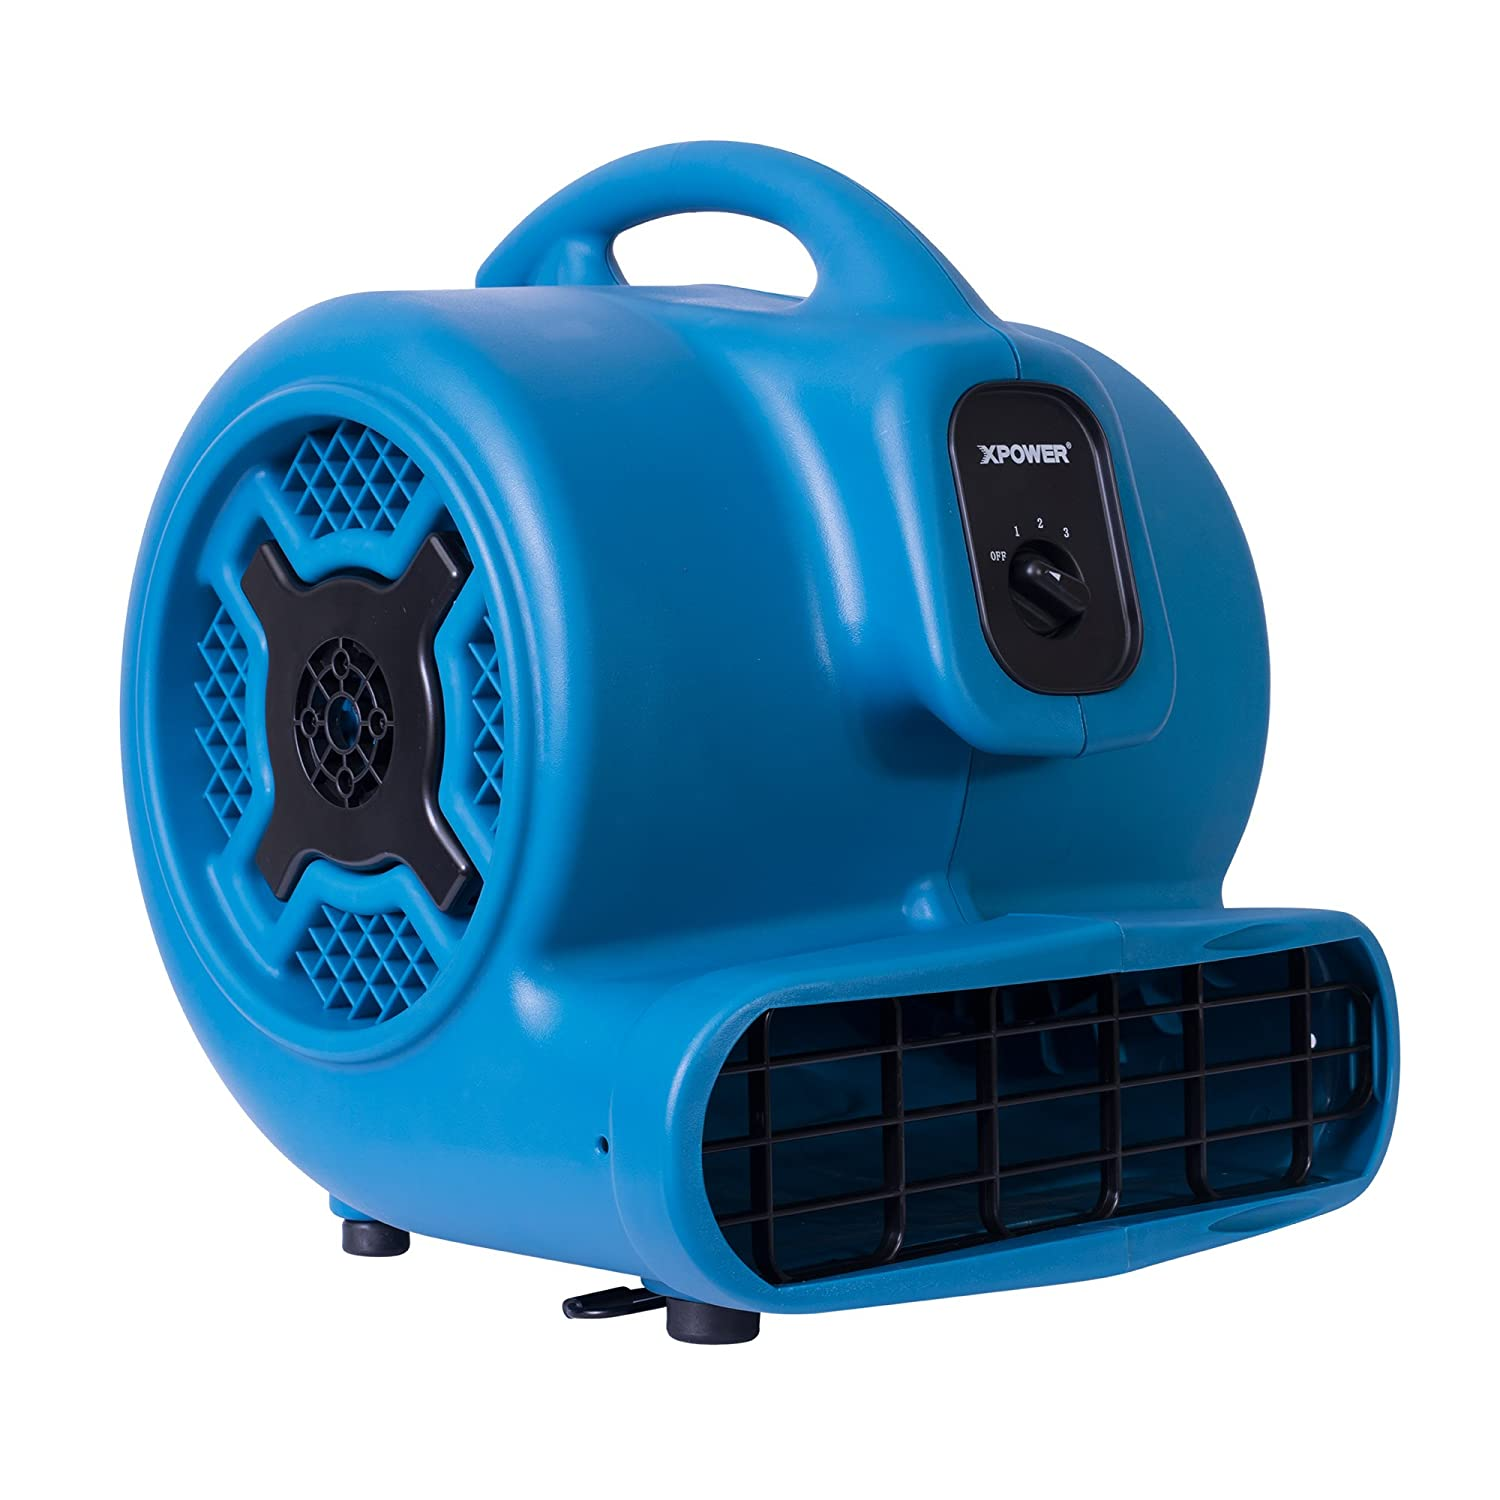 XPOWER P-830 Professional Air Mover, Carpet Dryer, Floor Fan, Blower for Water Damage Restoration, Commercial Cleaning and Plumbing Use - 1 HP, 3600 CFM, 3 Speeds, Blue